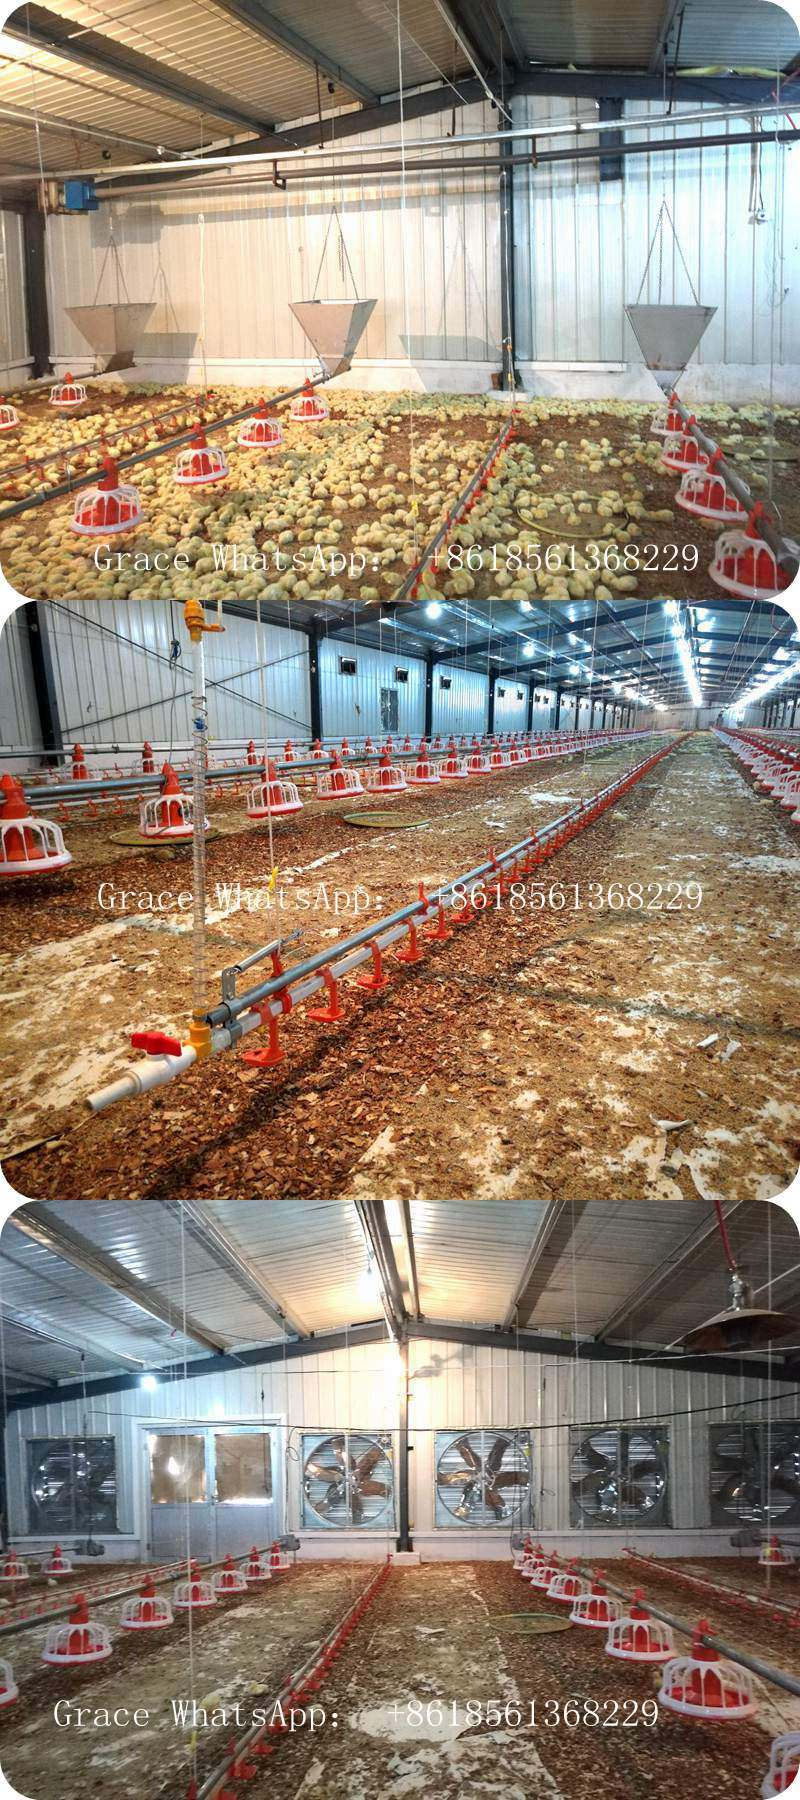 Automatic Poultry Equipment for Broiler with Customized Poultry Shed Construction